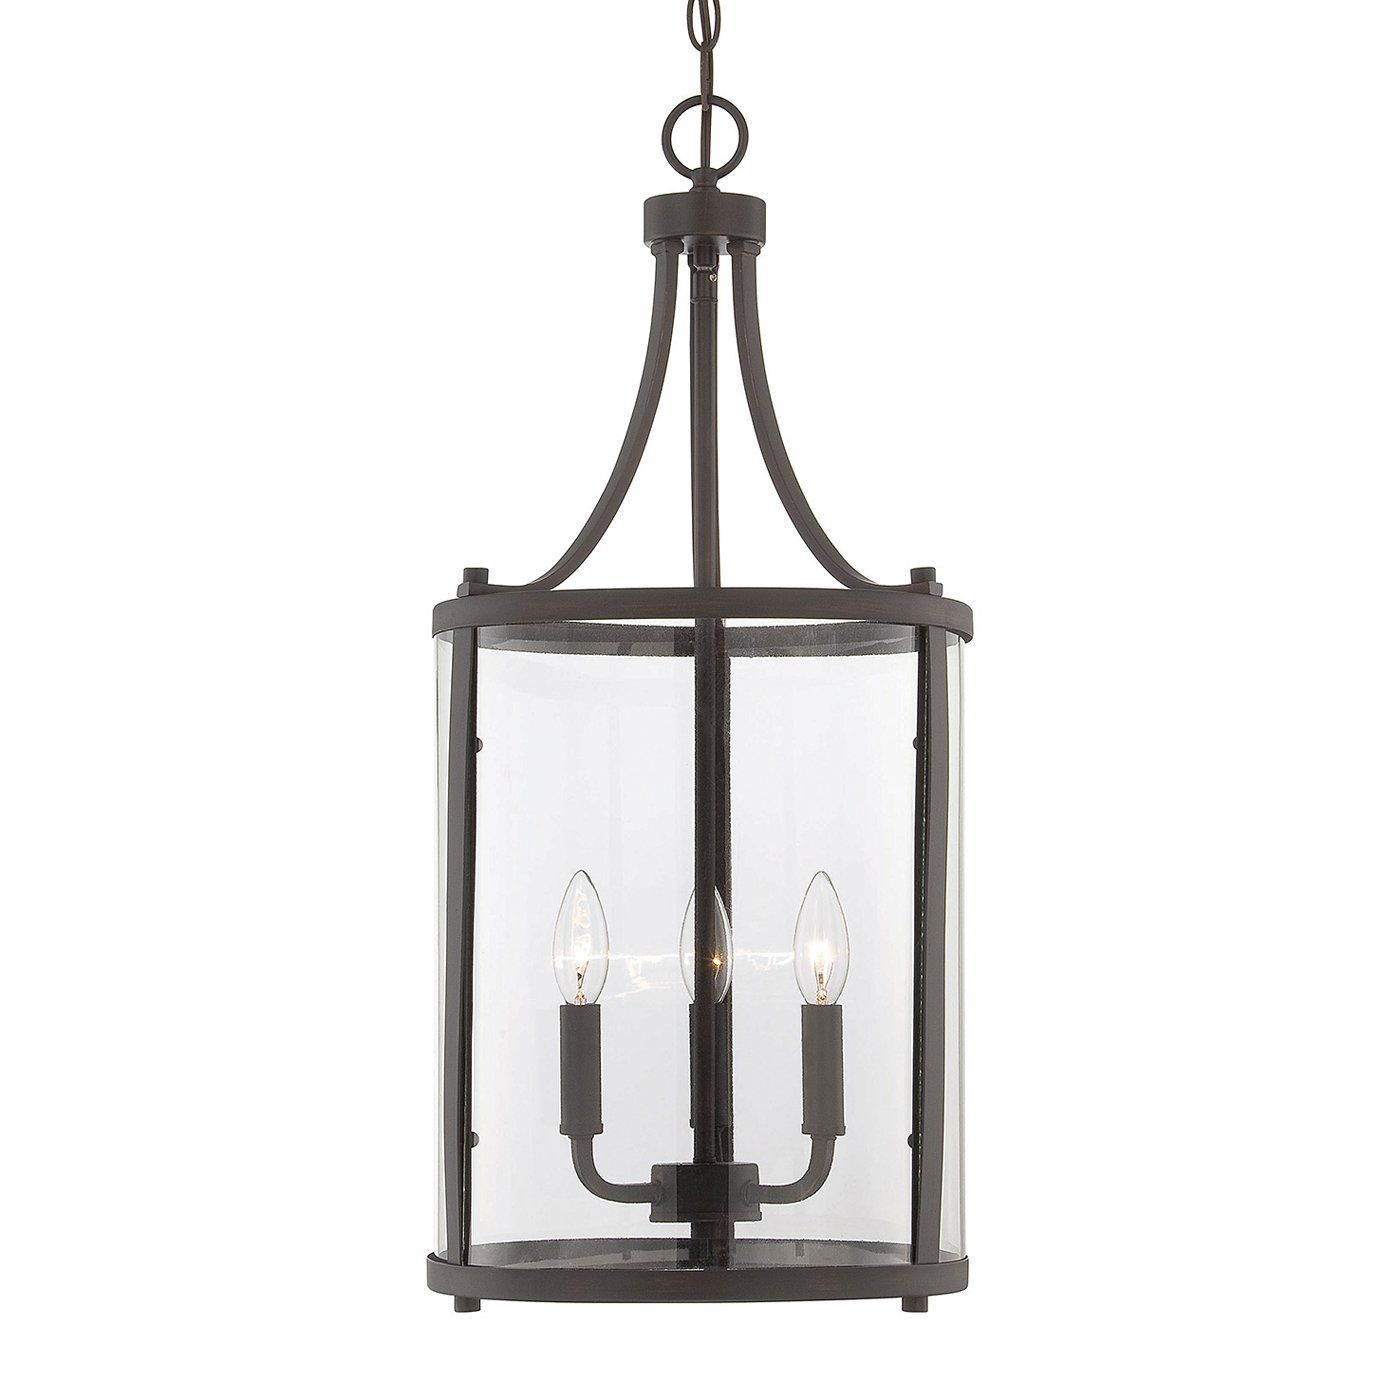 Savoy House 7-1040-3-SN Penrose 3 Light Small Foyer Lantern | ATG Stores, $178